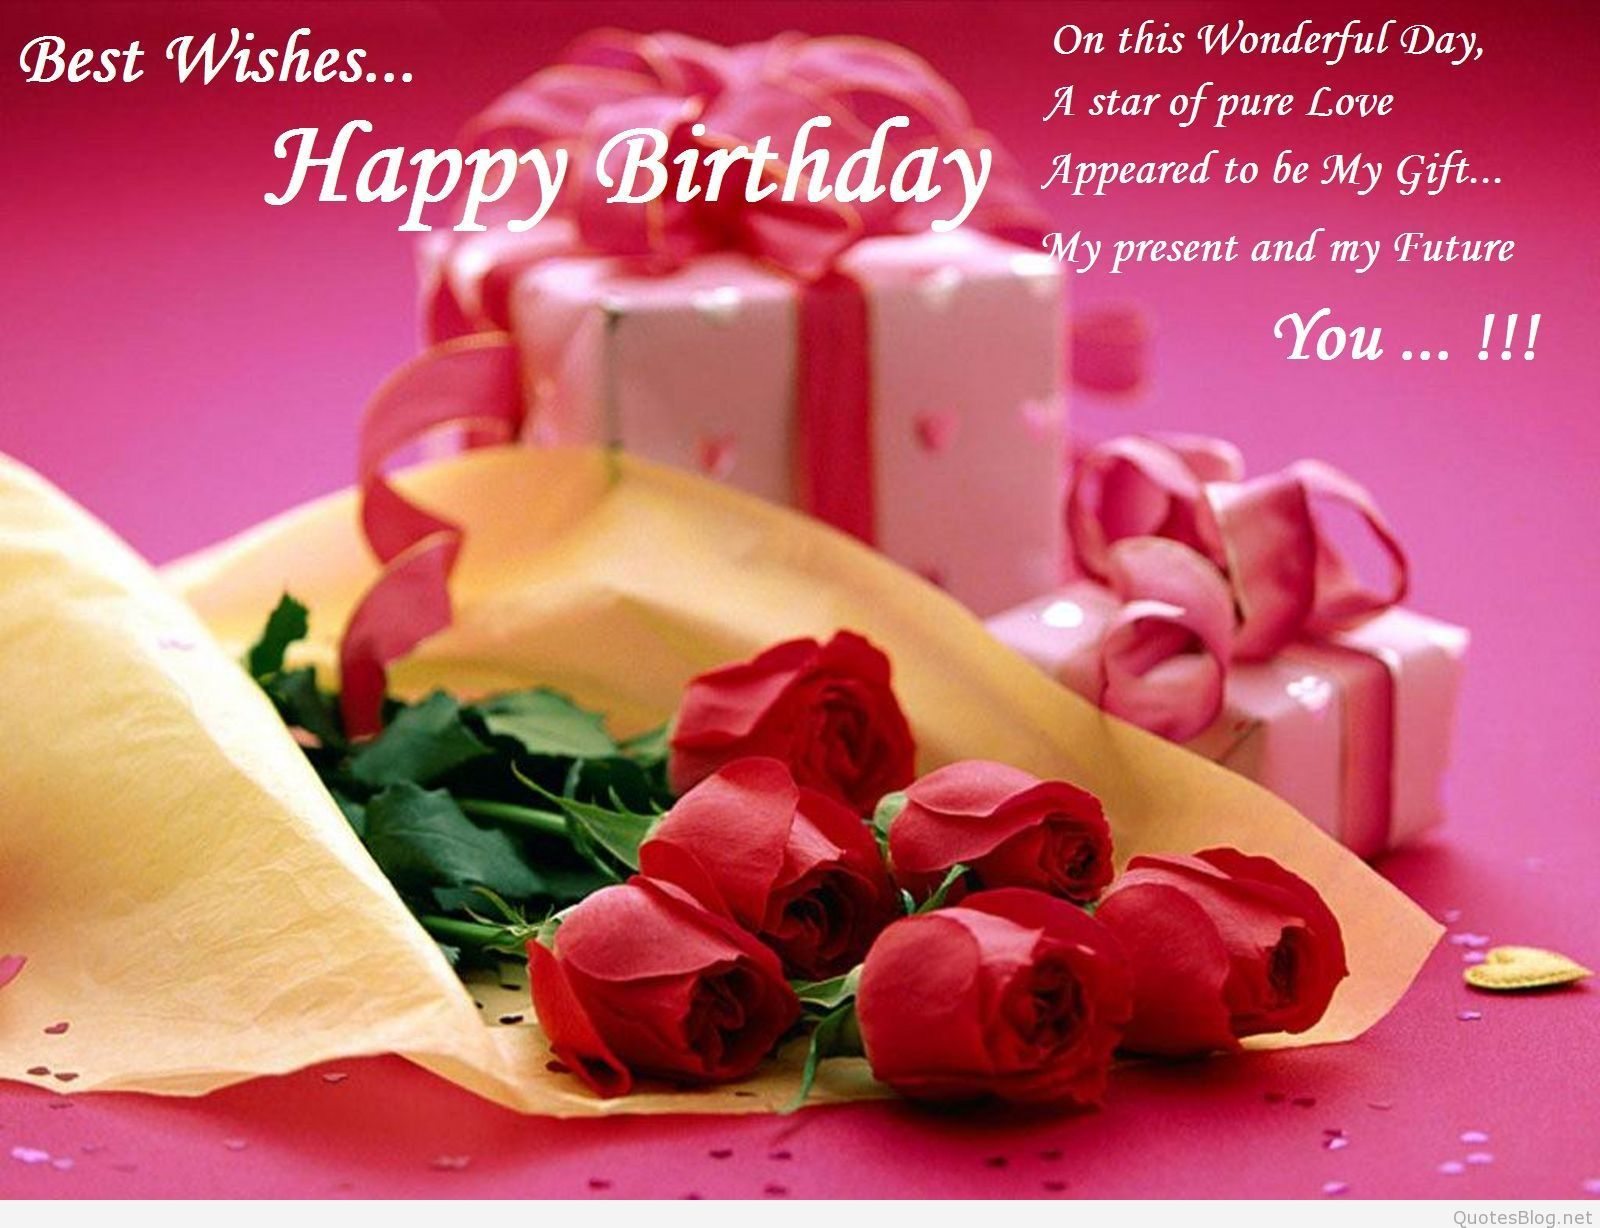 beautiful birthday images download ; 3b9e0fb82bc24530dc3a5bc84b65ac75